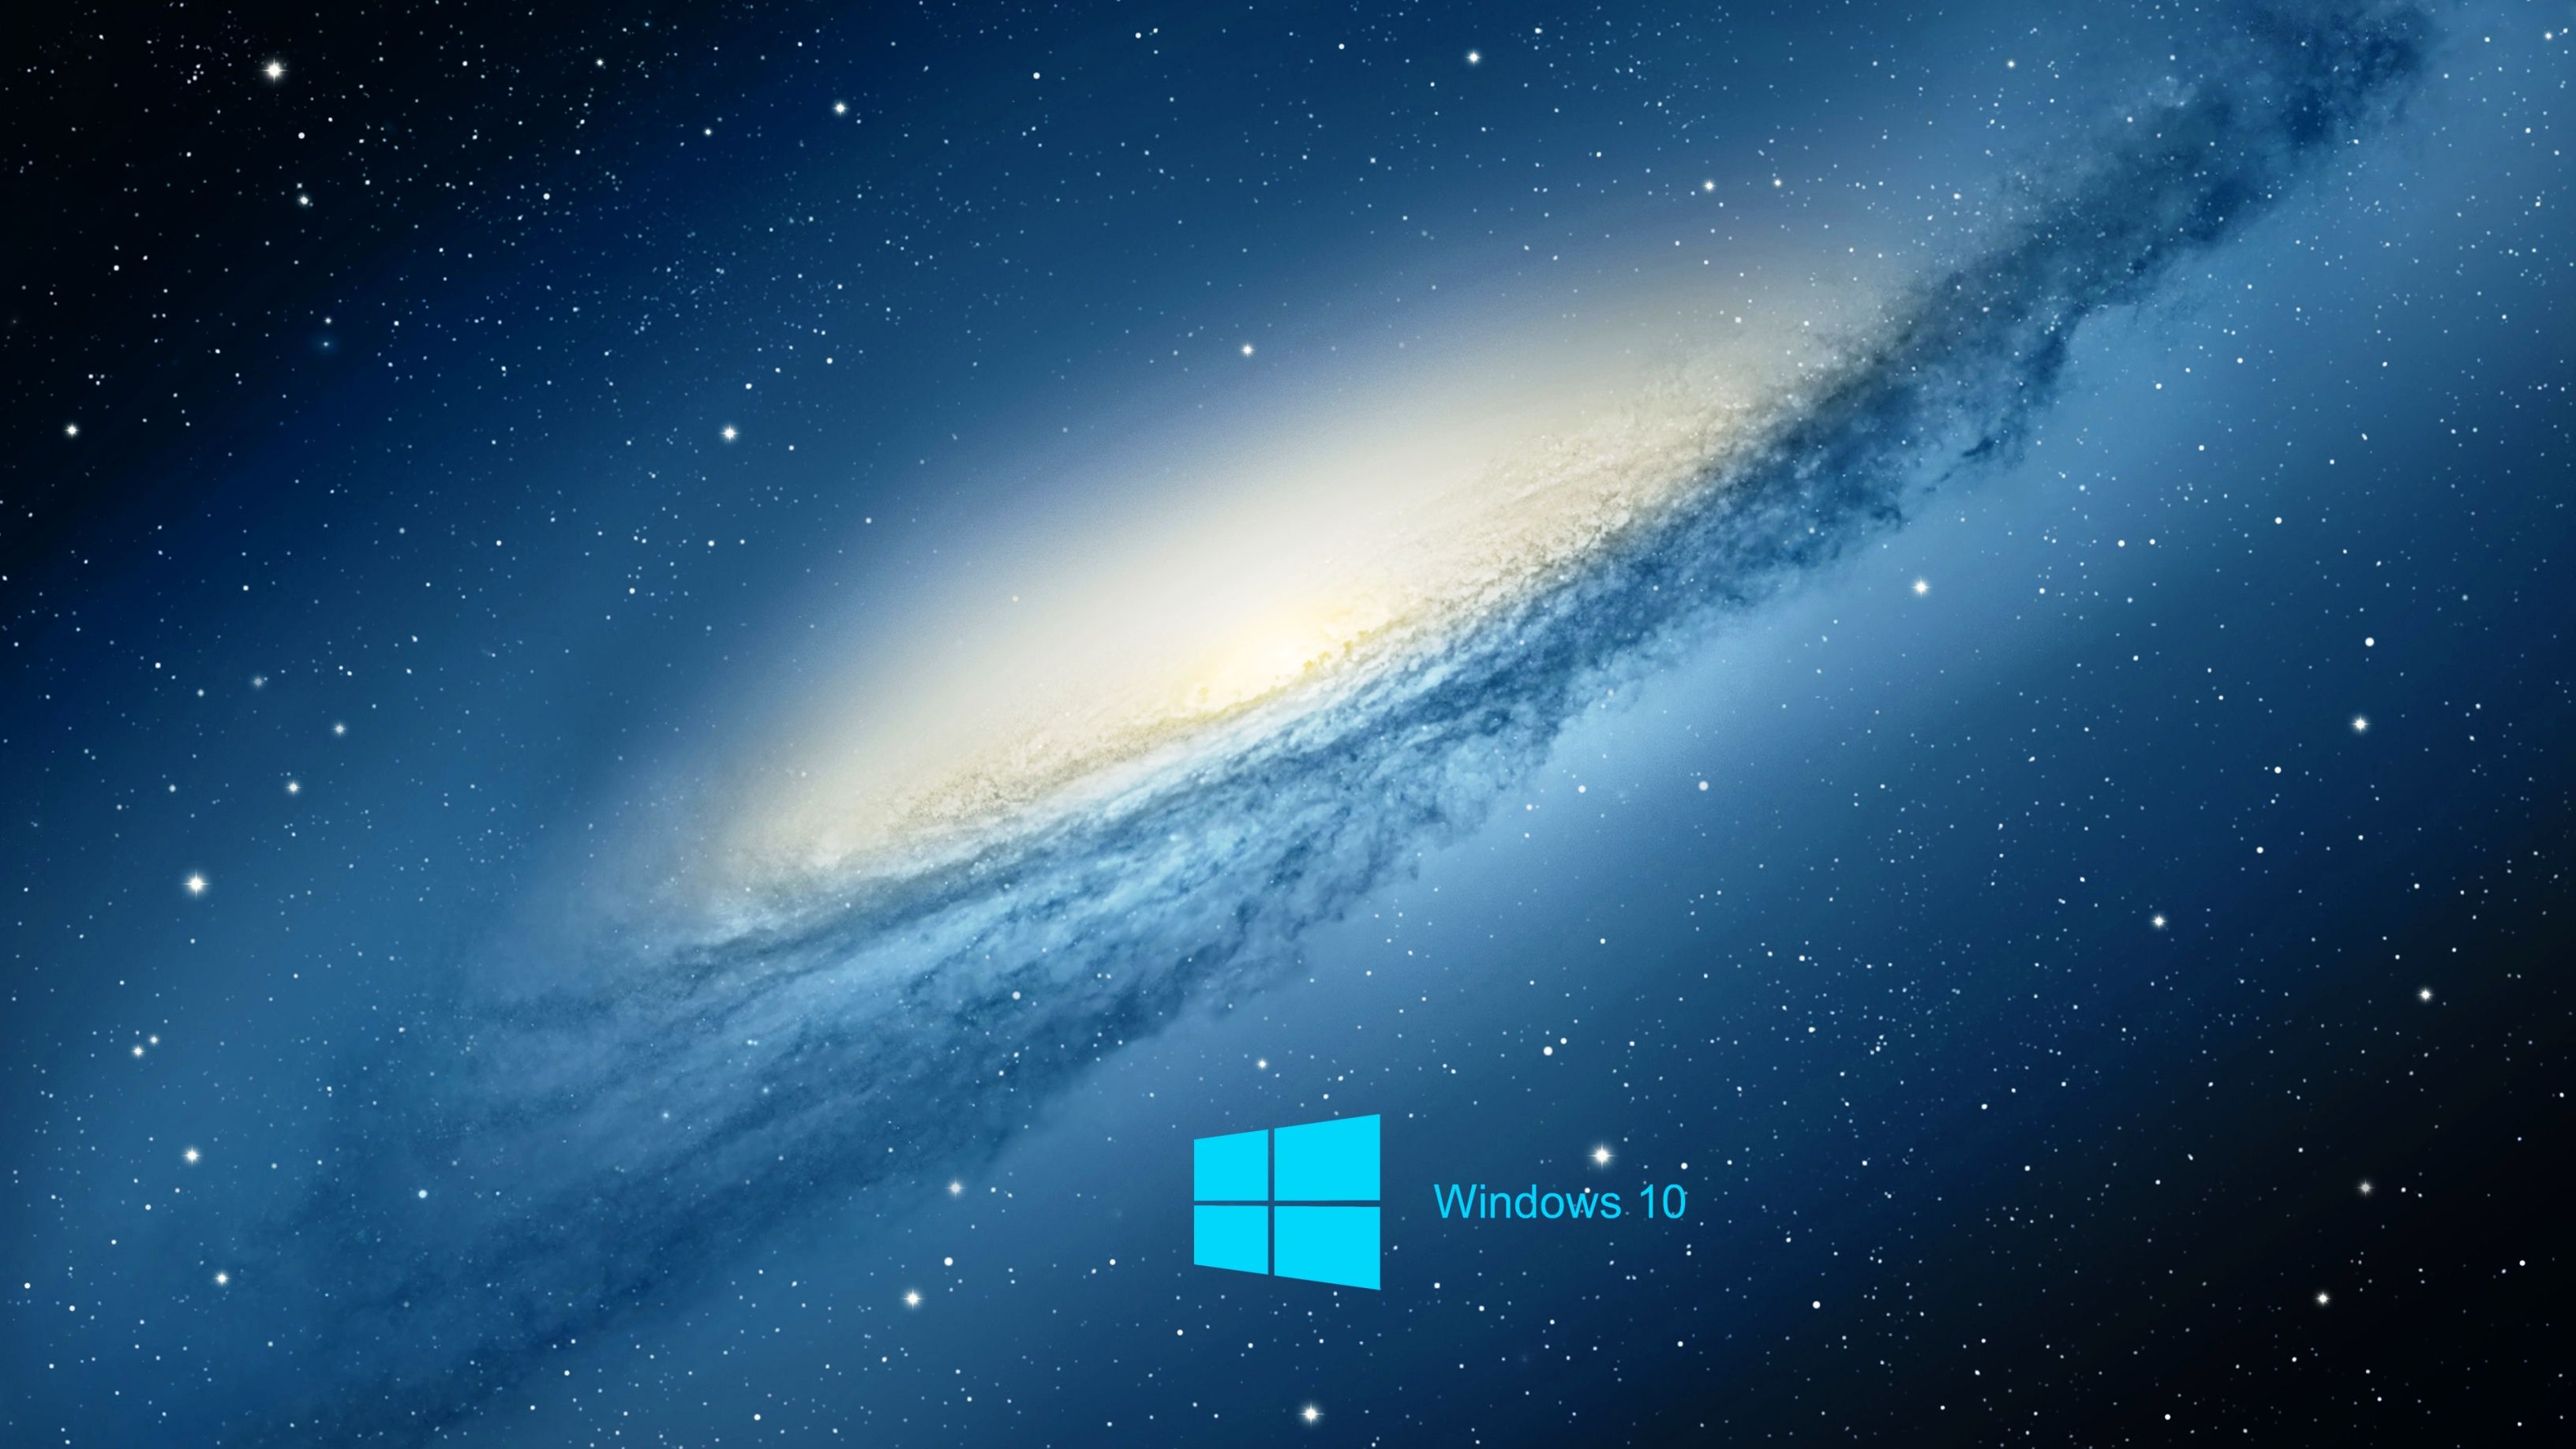 Windows 10 Ultra Hd Wallpaper Attractive Wallpapers Windows 10 Cool Desktop